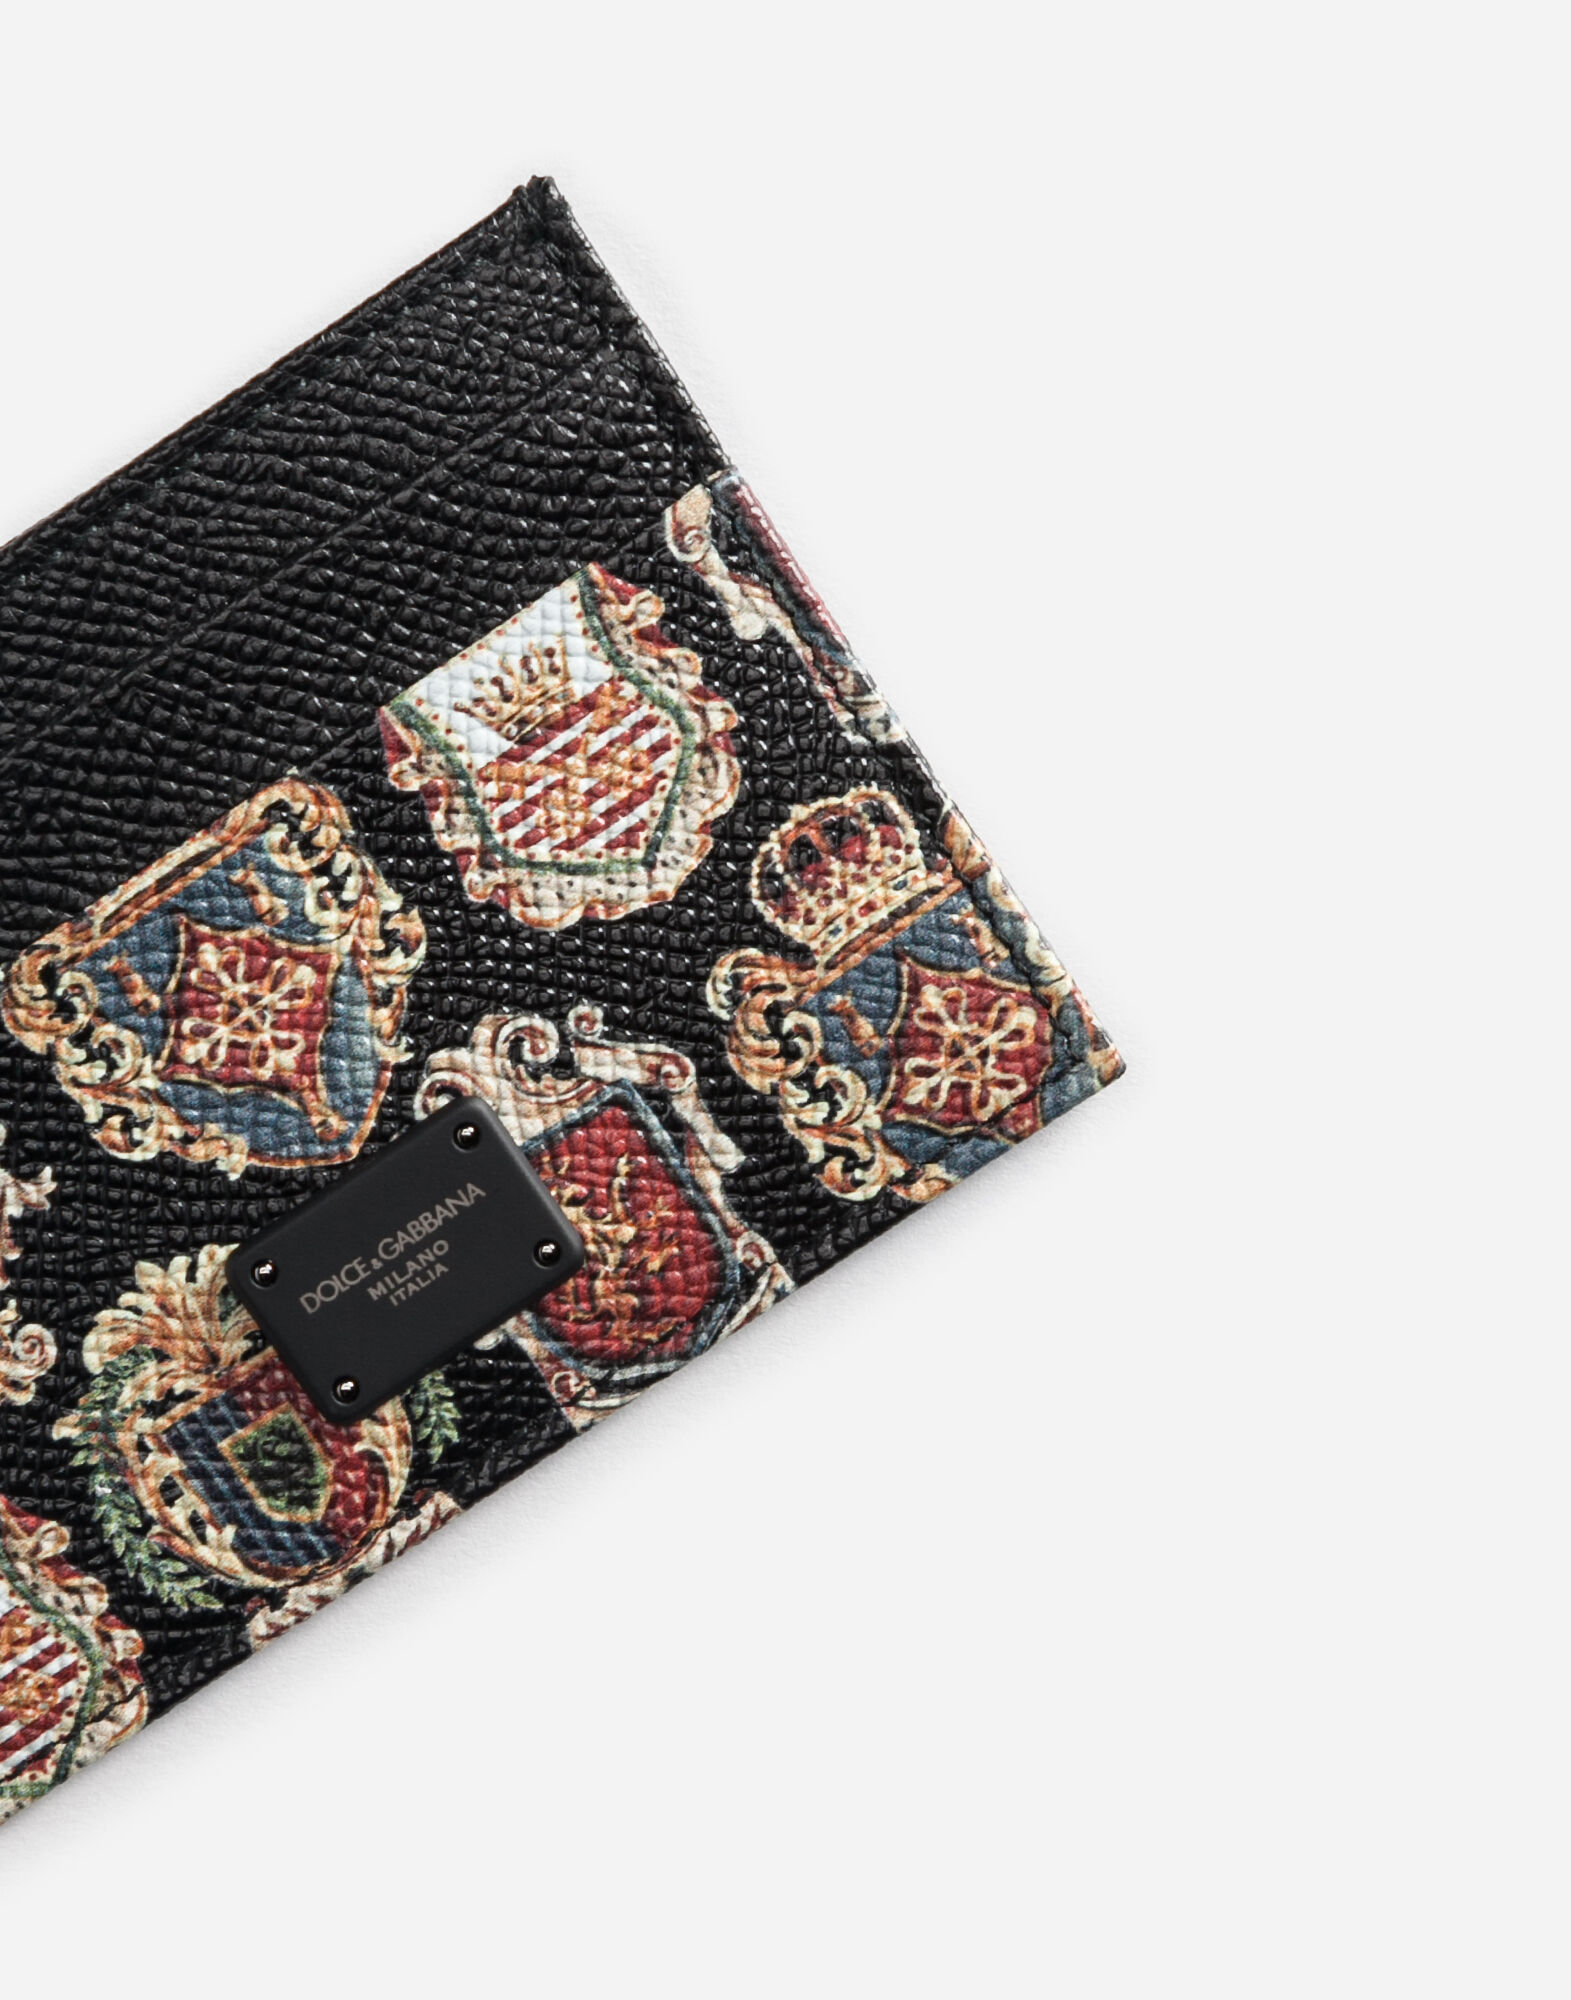 CARD HOLDER IN PRINTED DAUPHINE LEATHER